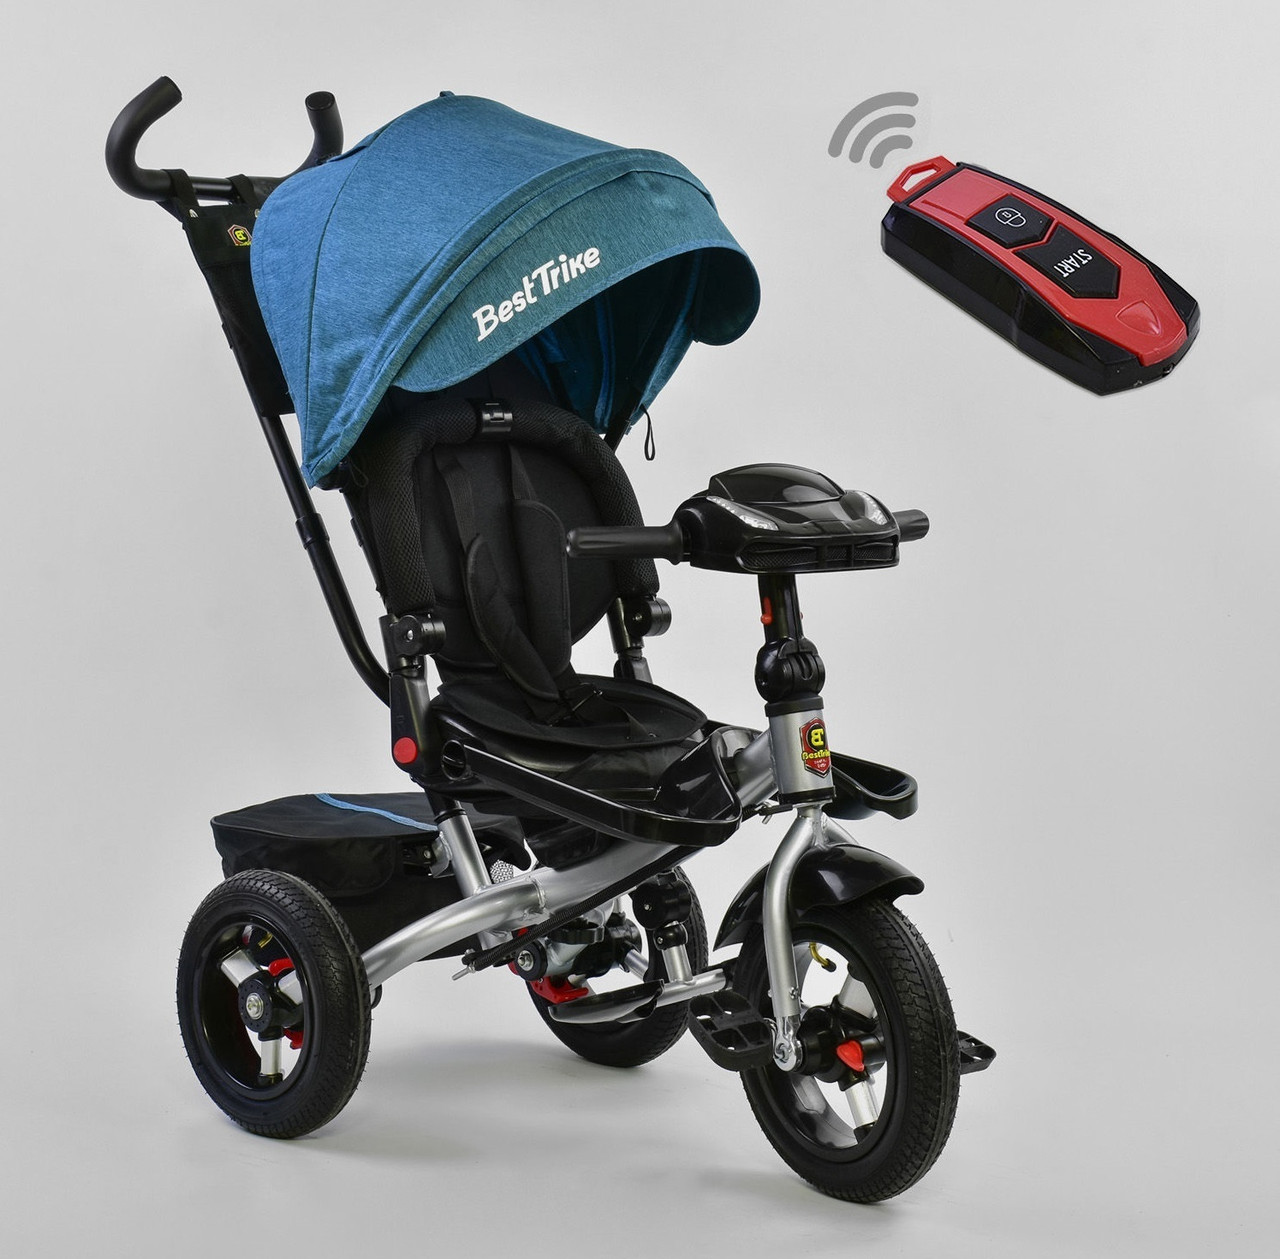 Best Trike Велосипед Best Trike 6088 F 1670 New Turquoise/Black (6088 FN)